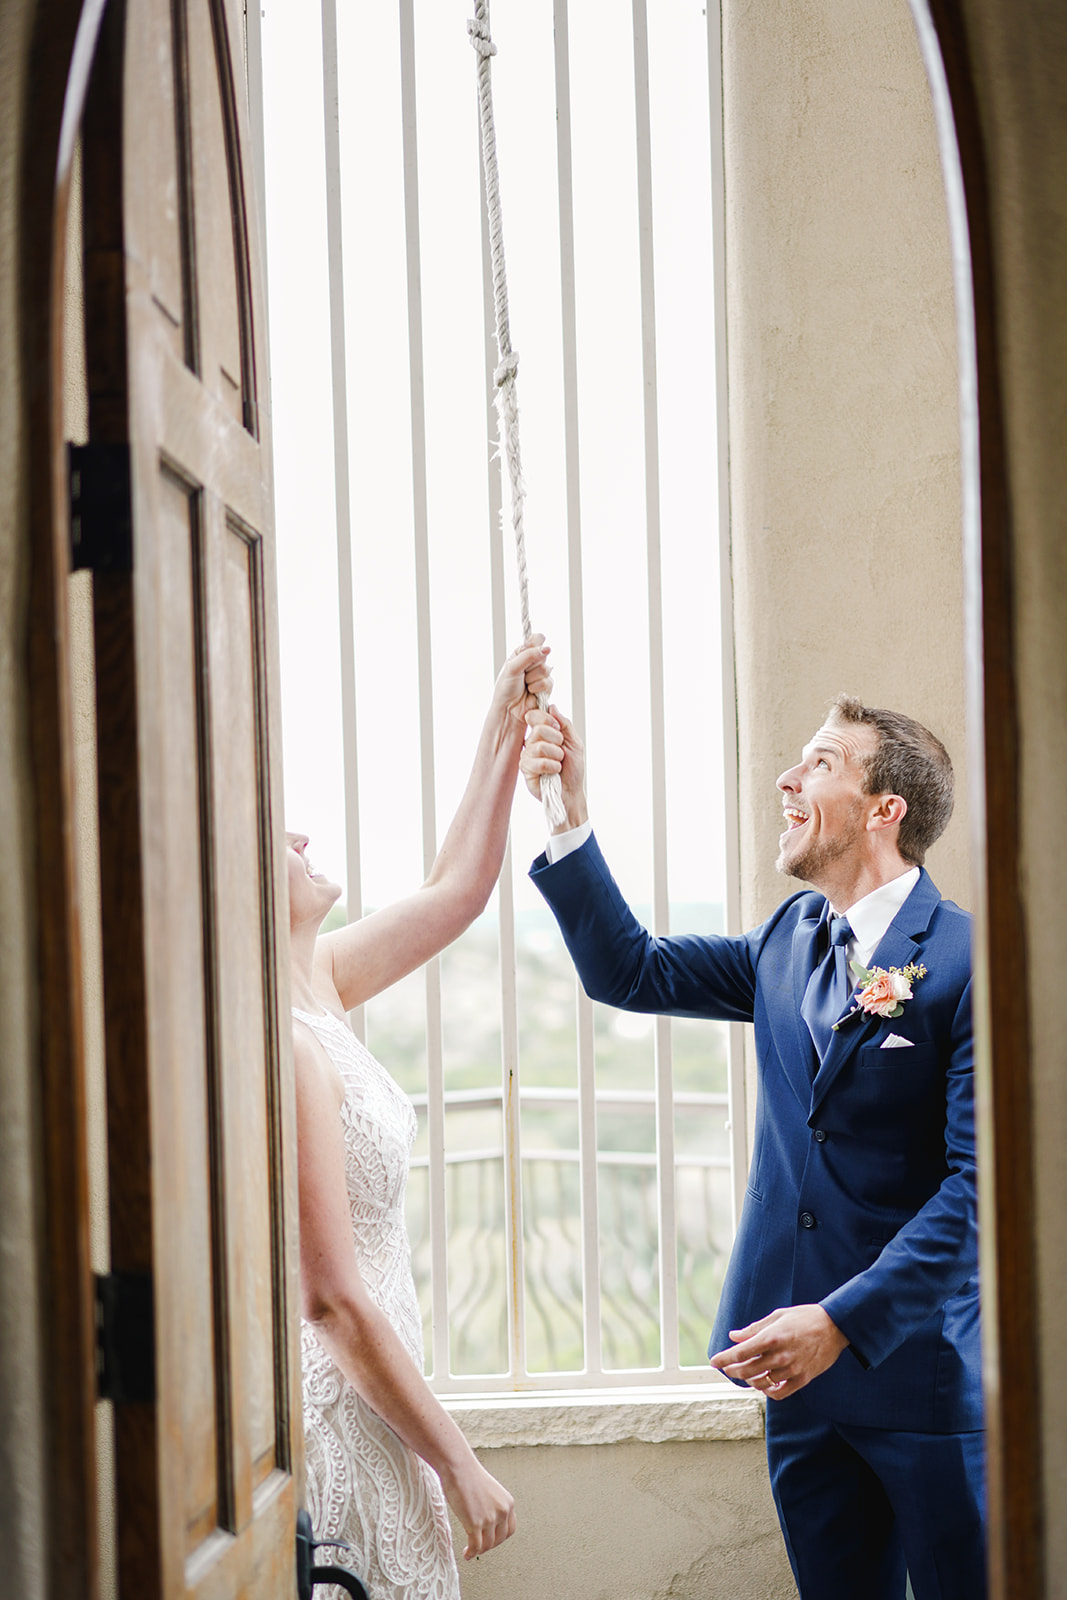 Austin Wedding Photographer | Intimate Austin Wedding Photos | Chapel Dulcinea Wedding | Austin Wedding Venue | Austin Elopement | Caitlin Rose Photography